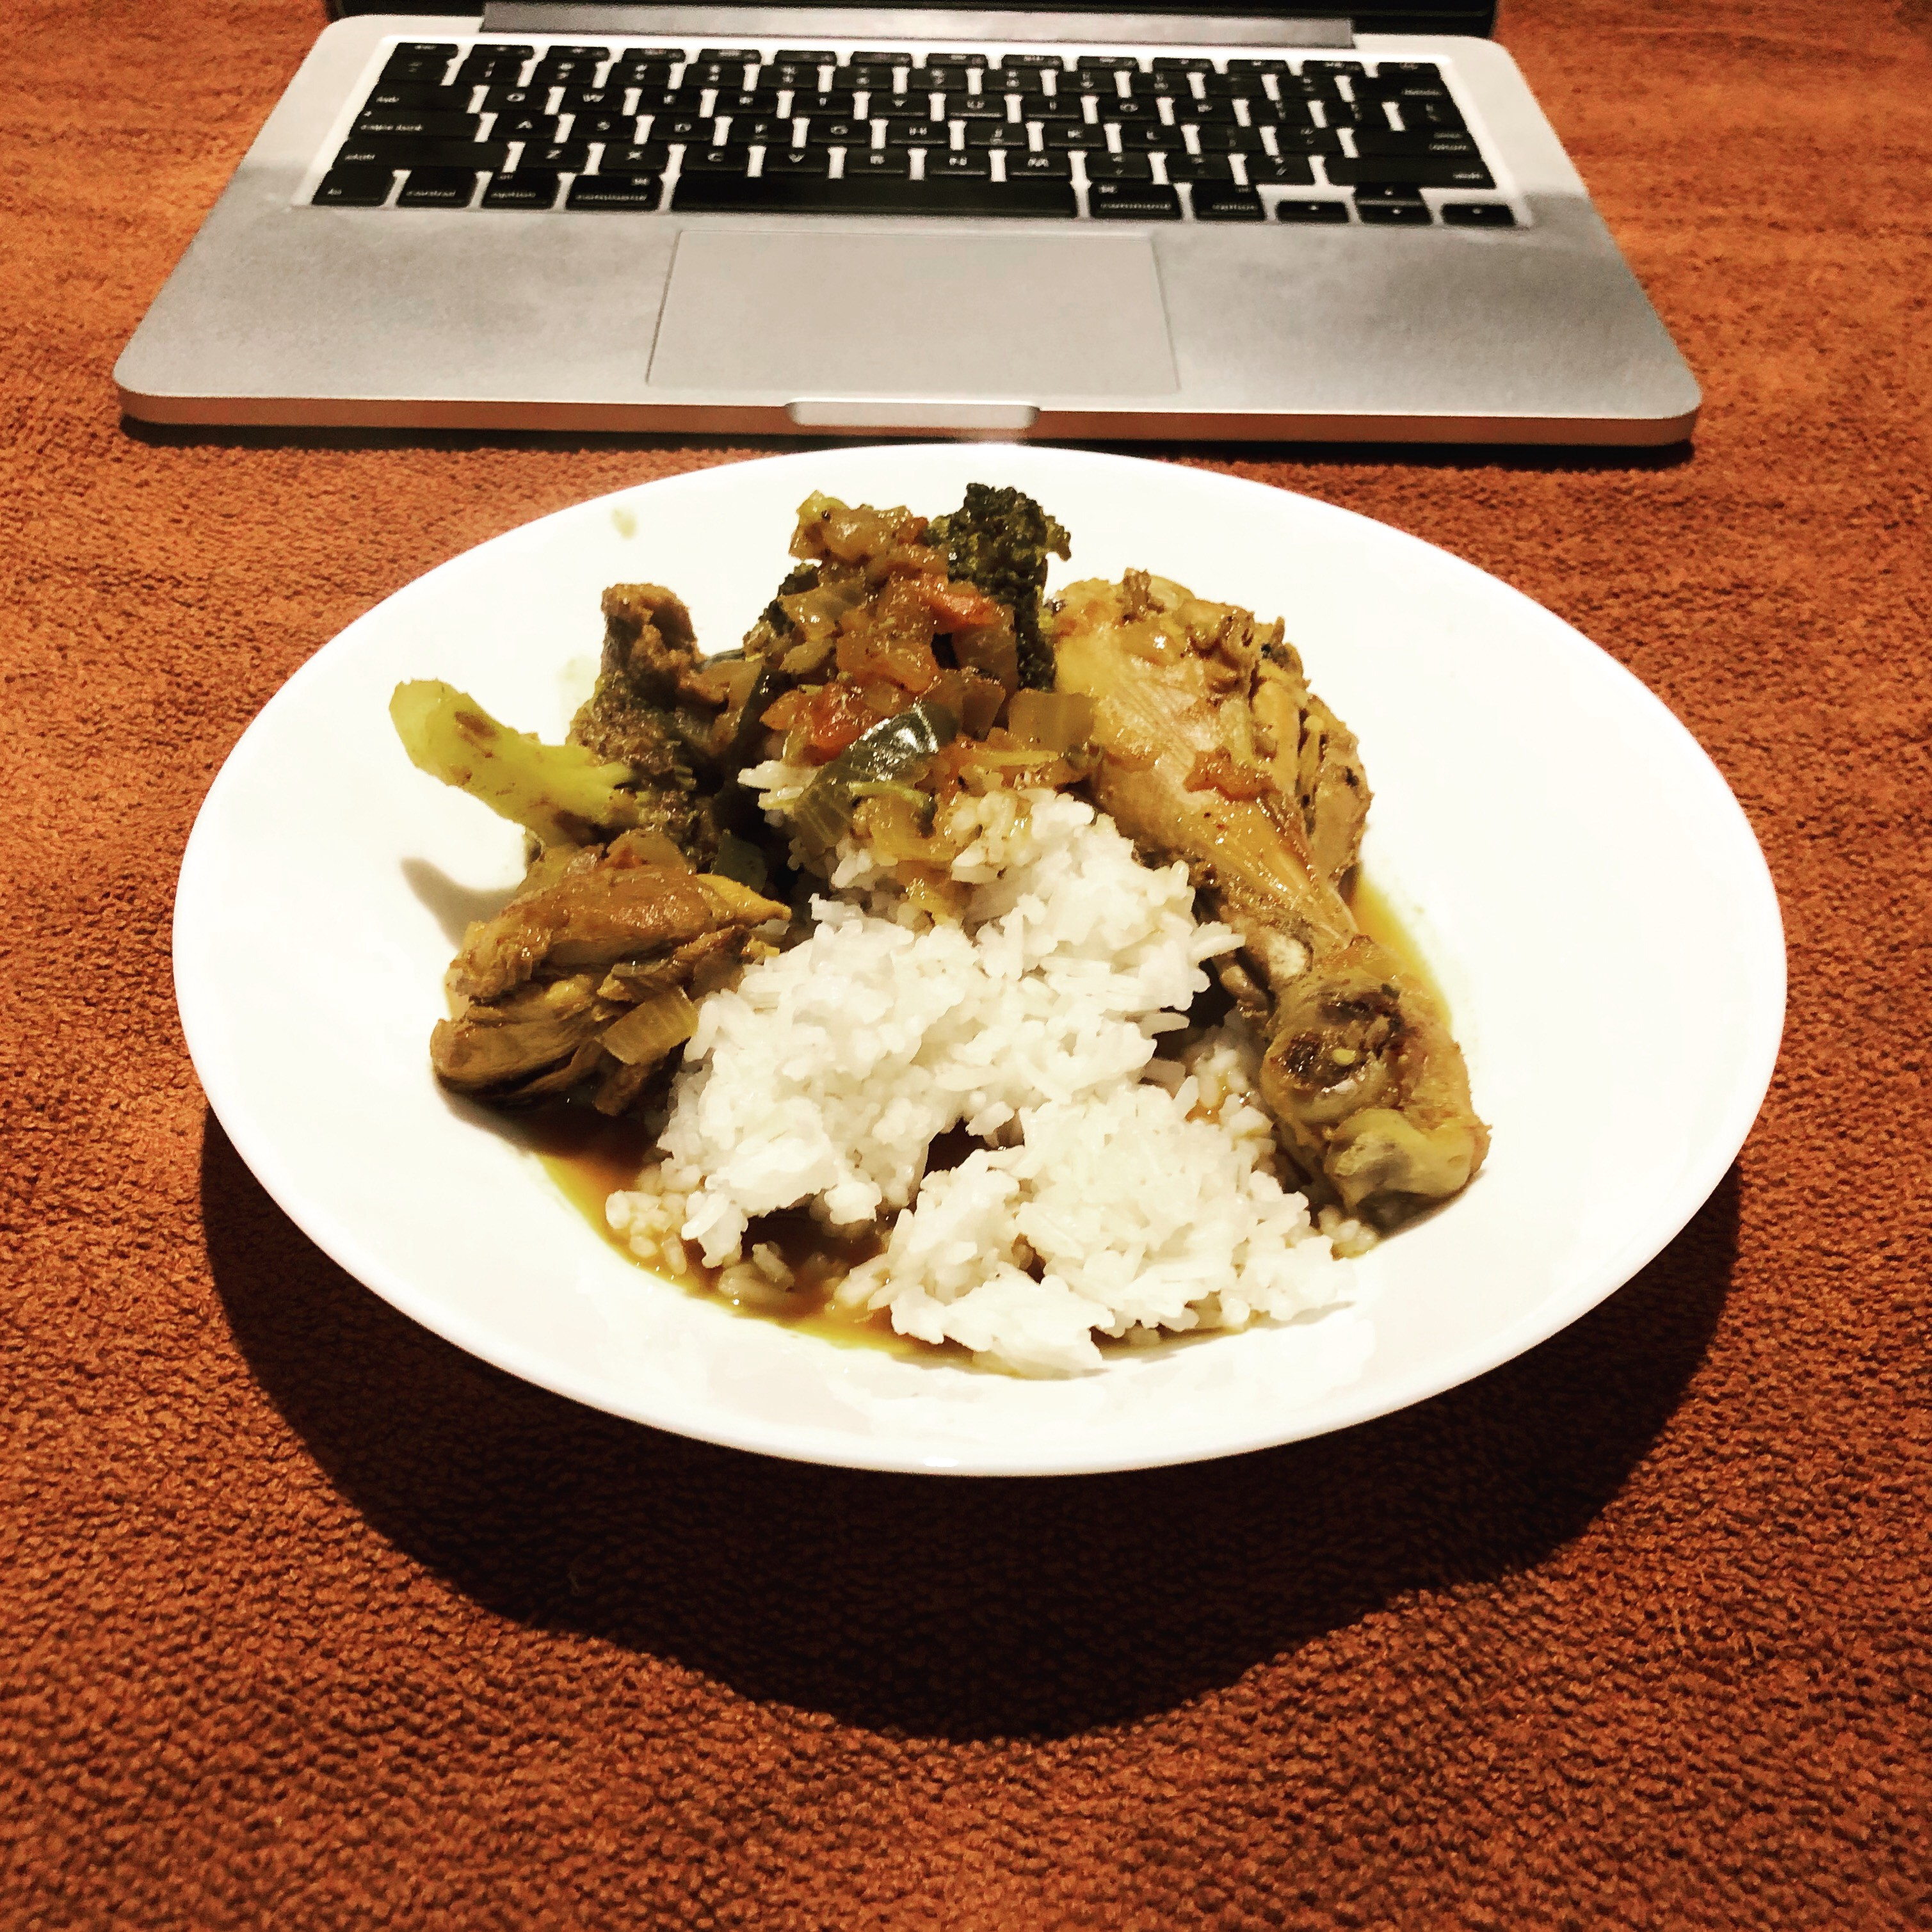 chicken curry (including broccolis) — also no need rice cooker, just boil and monitor